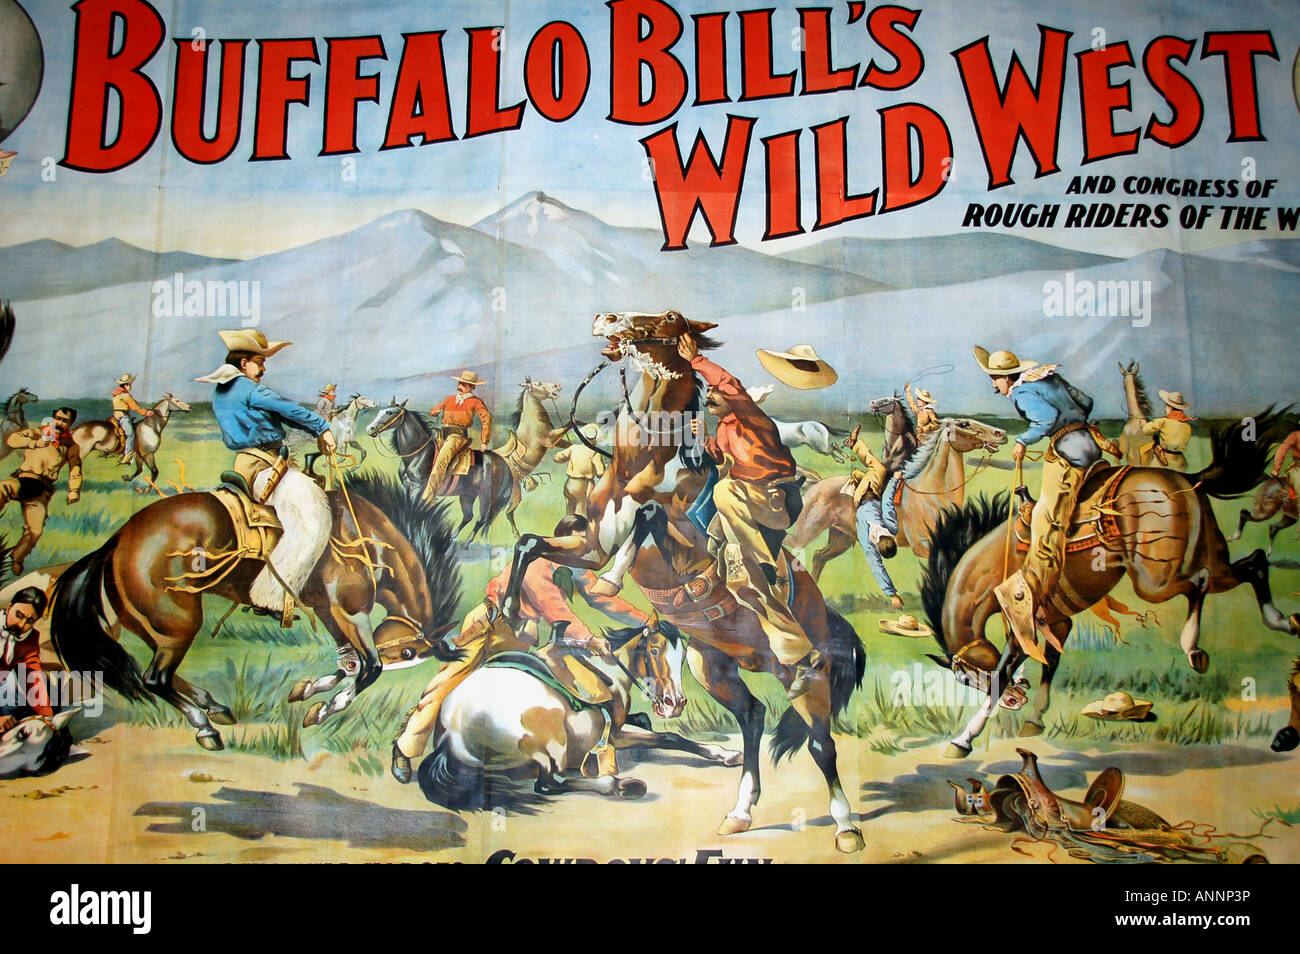 https www alamy com stock photo poster for buffalo bills wild west show at the buffalo bill historical 15571401 html